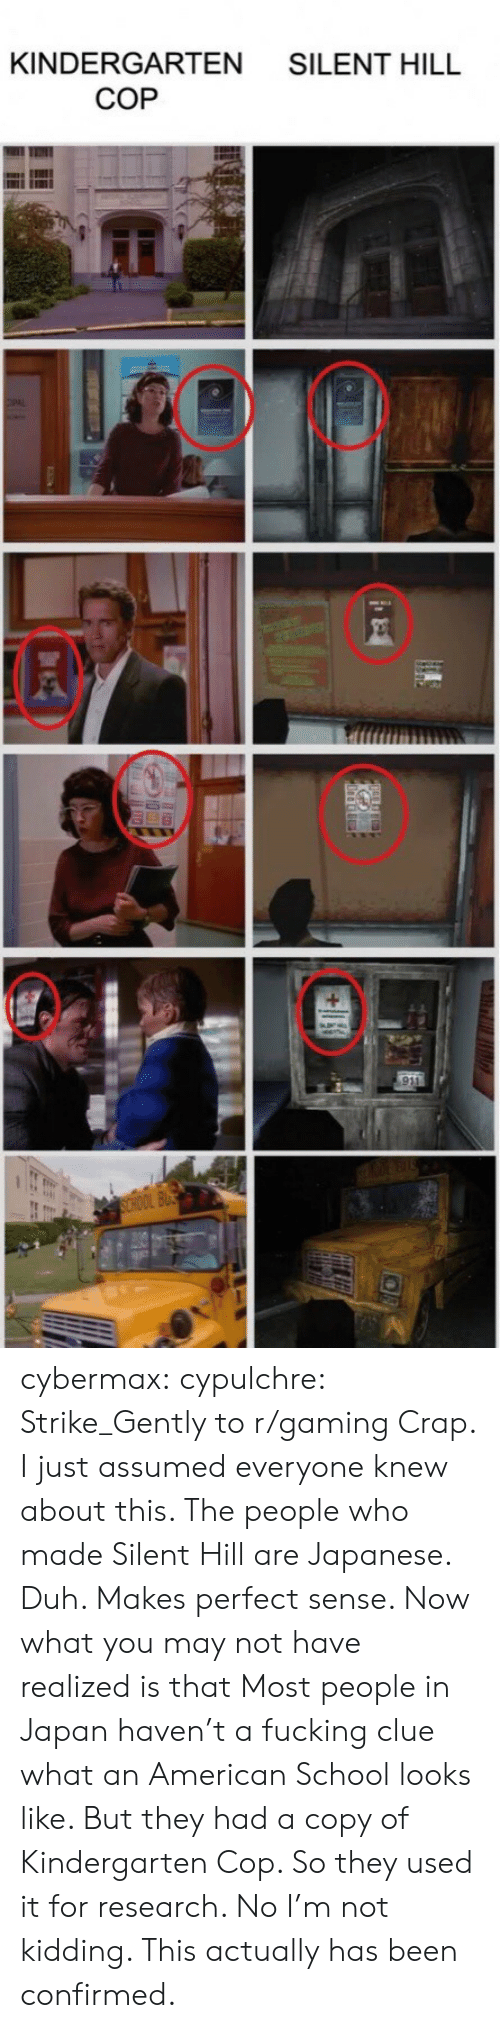 Fucking, Reddit, and School: KINDERGARTEN SILENT HILL  COP cybermax:  cypulchre:   Strike_Gently to r/gaming   Crap. I just assumed everyone knew about this. The people who made Silent Hill are Japanese. Duh. Makes perfect sense. Now what you may not have realized is that Most people in Japan haven't a fucking clue what an American School looks like. But they had a copy of Kindergarten Cop. So they used it for research. No I'm not kidding. This actually has been confirmed.